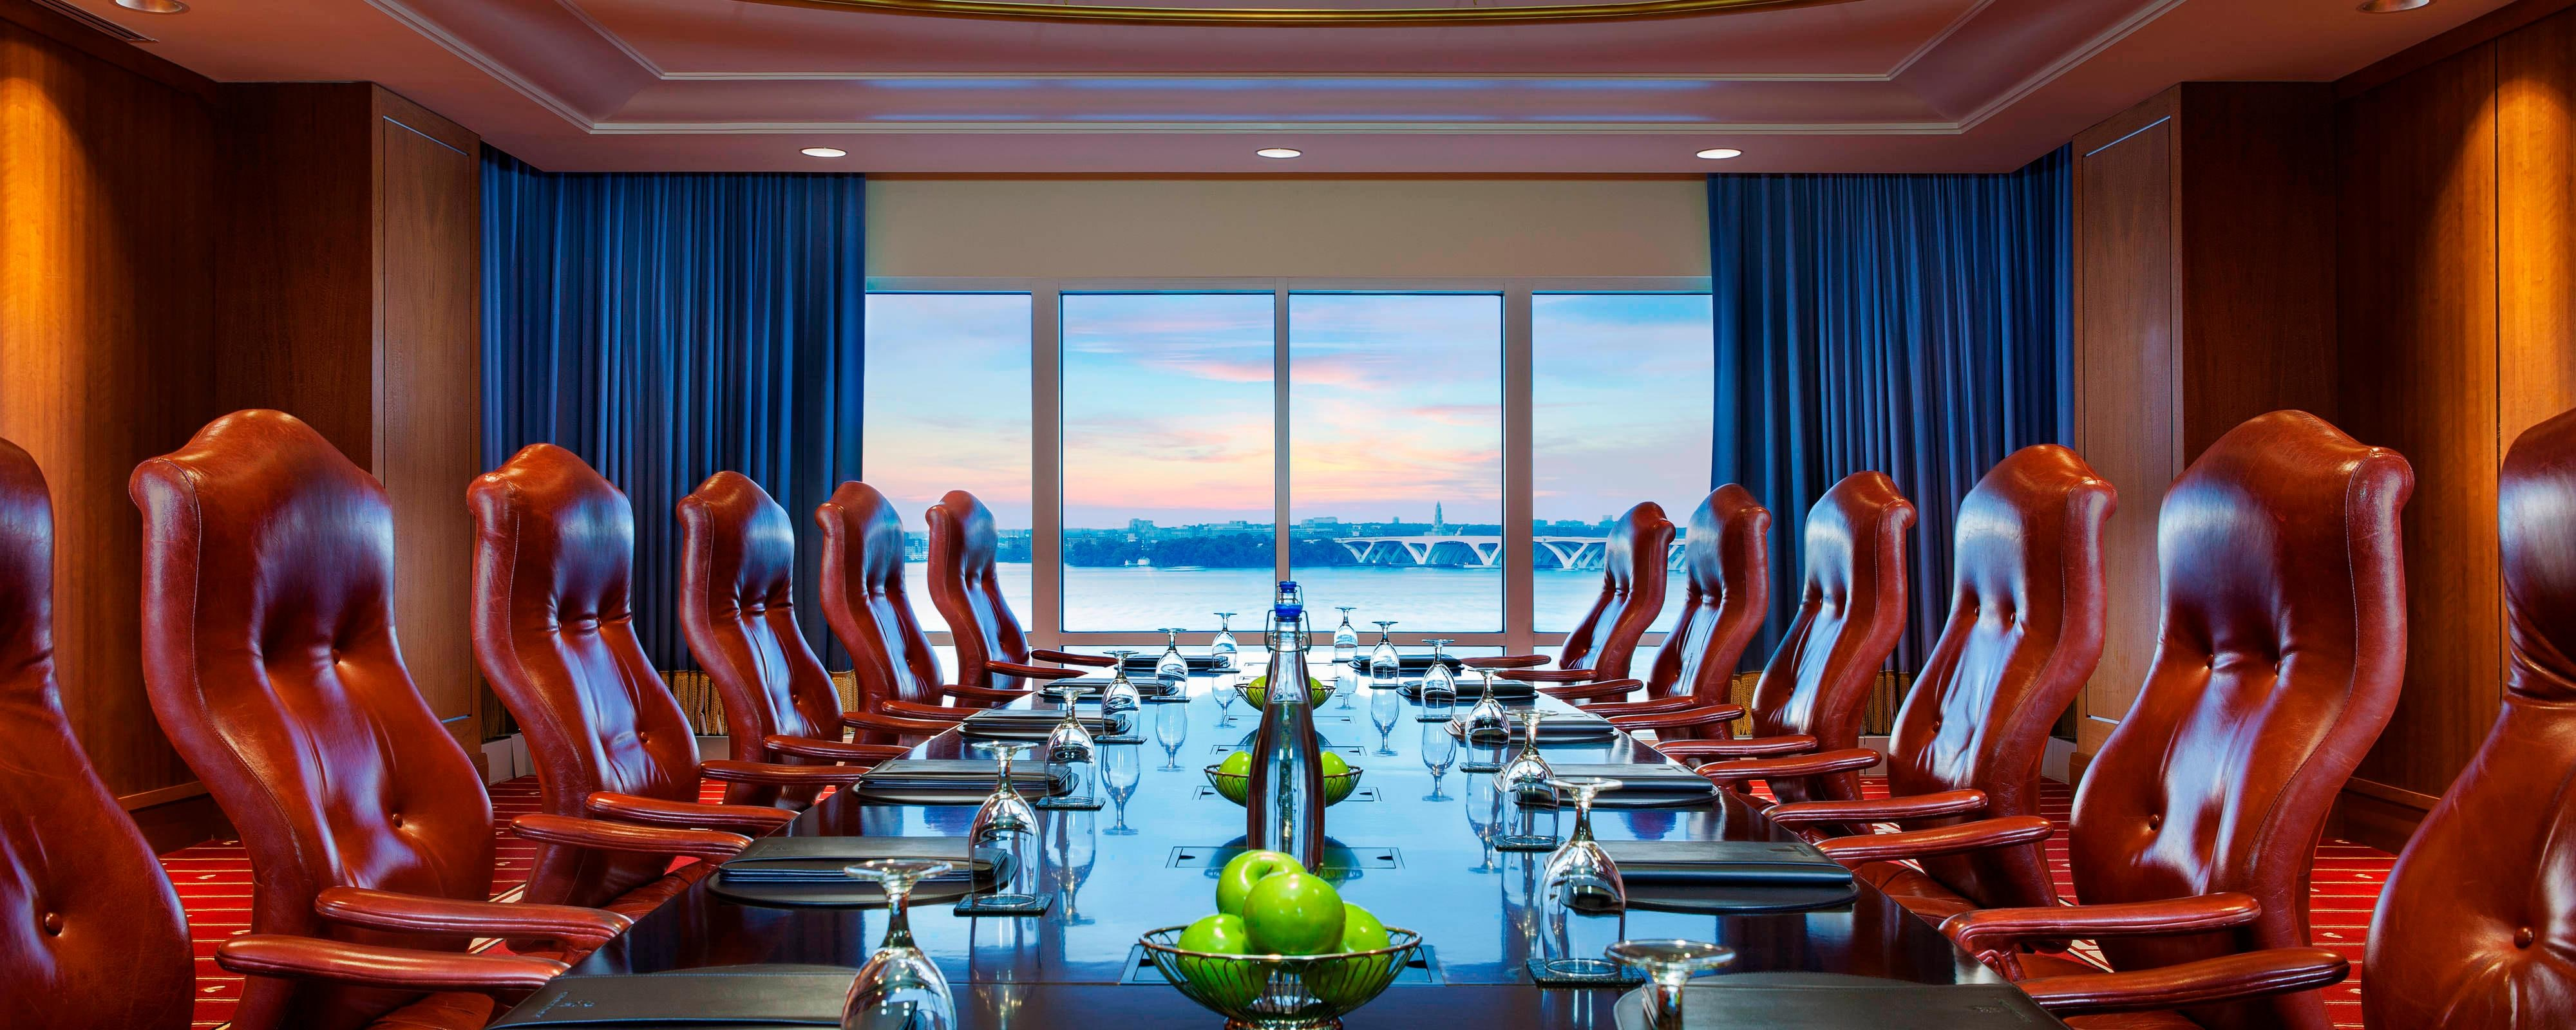 National Harbor Meeting Rooms Gaylord National Resort Convention